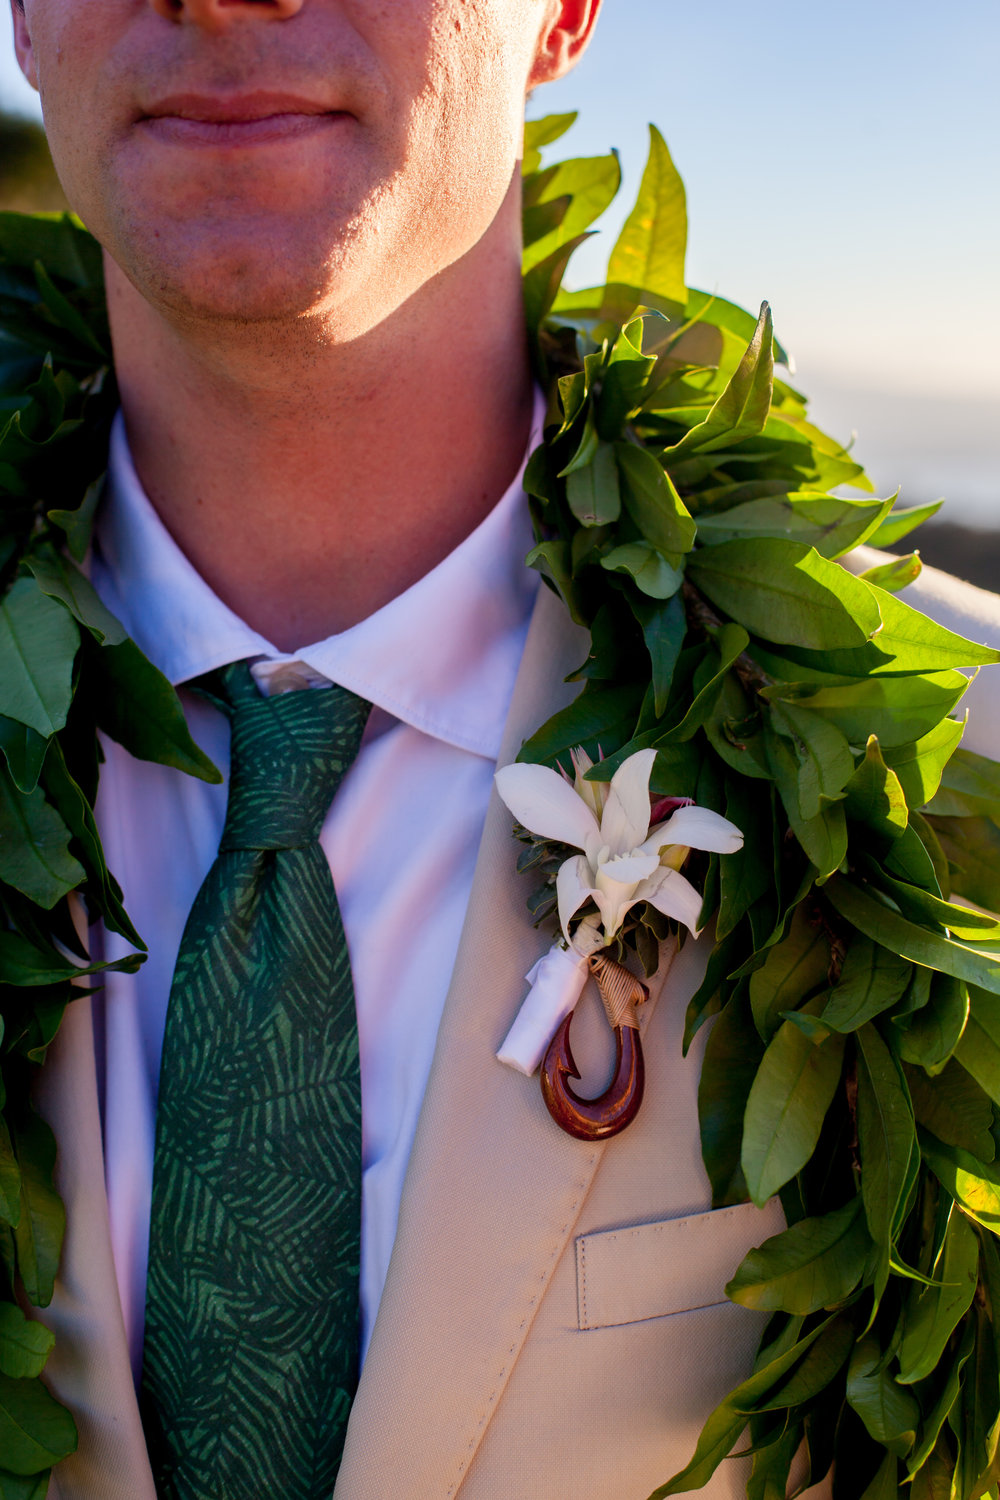 big island hawaii kahua ranch wedding © kelilina photography 20170106174011.jpg